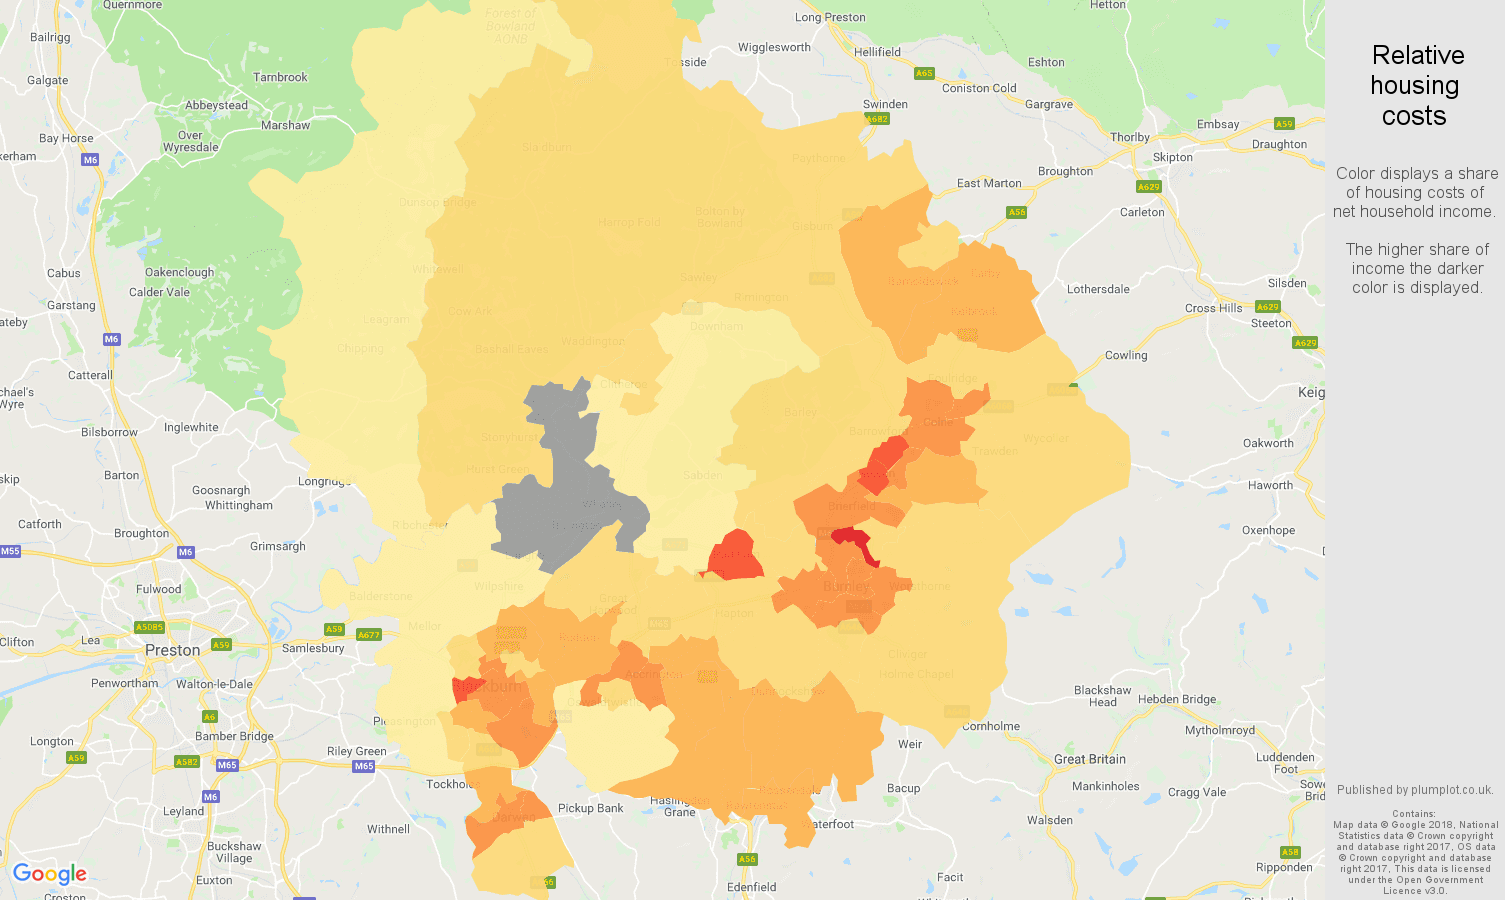 Blackburn relative housing costs map